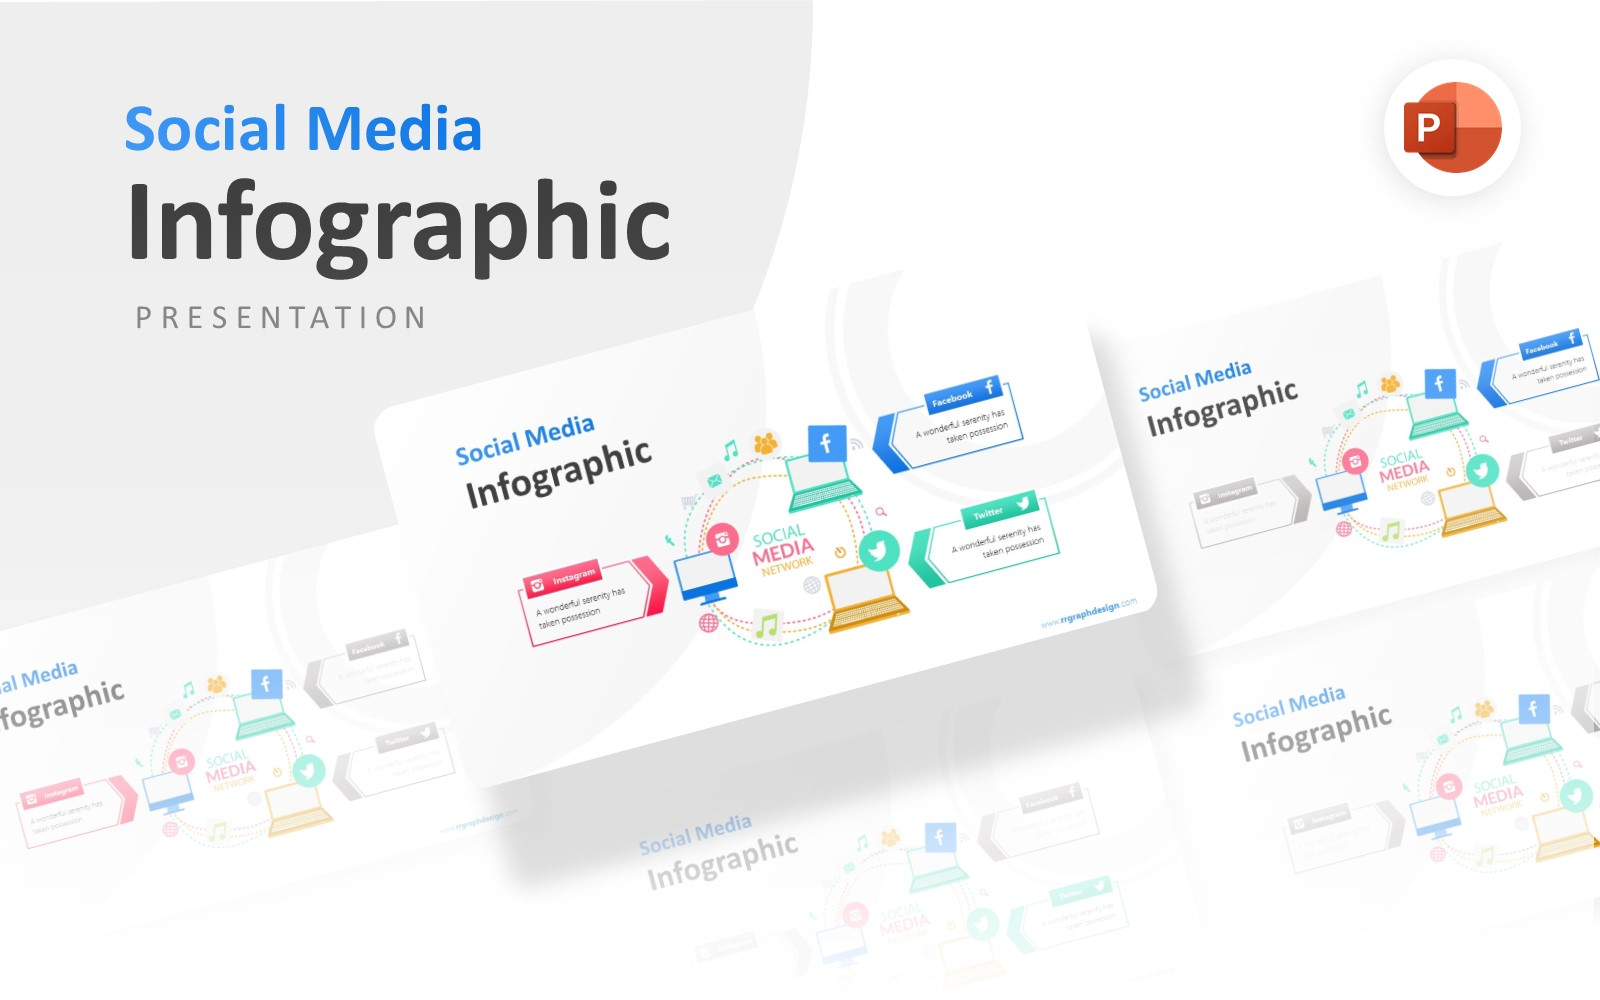 Laptop Illustration With Social Media Infographic Presentation PowerPoint Template